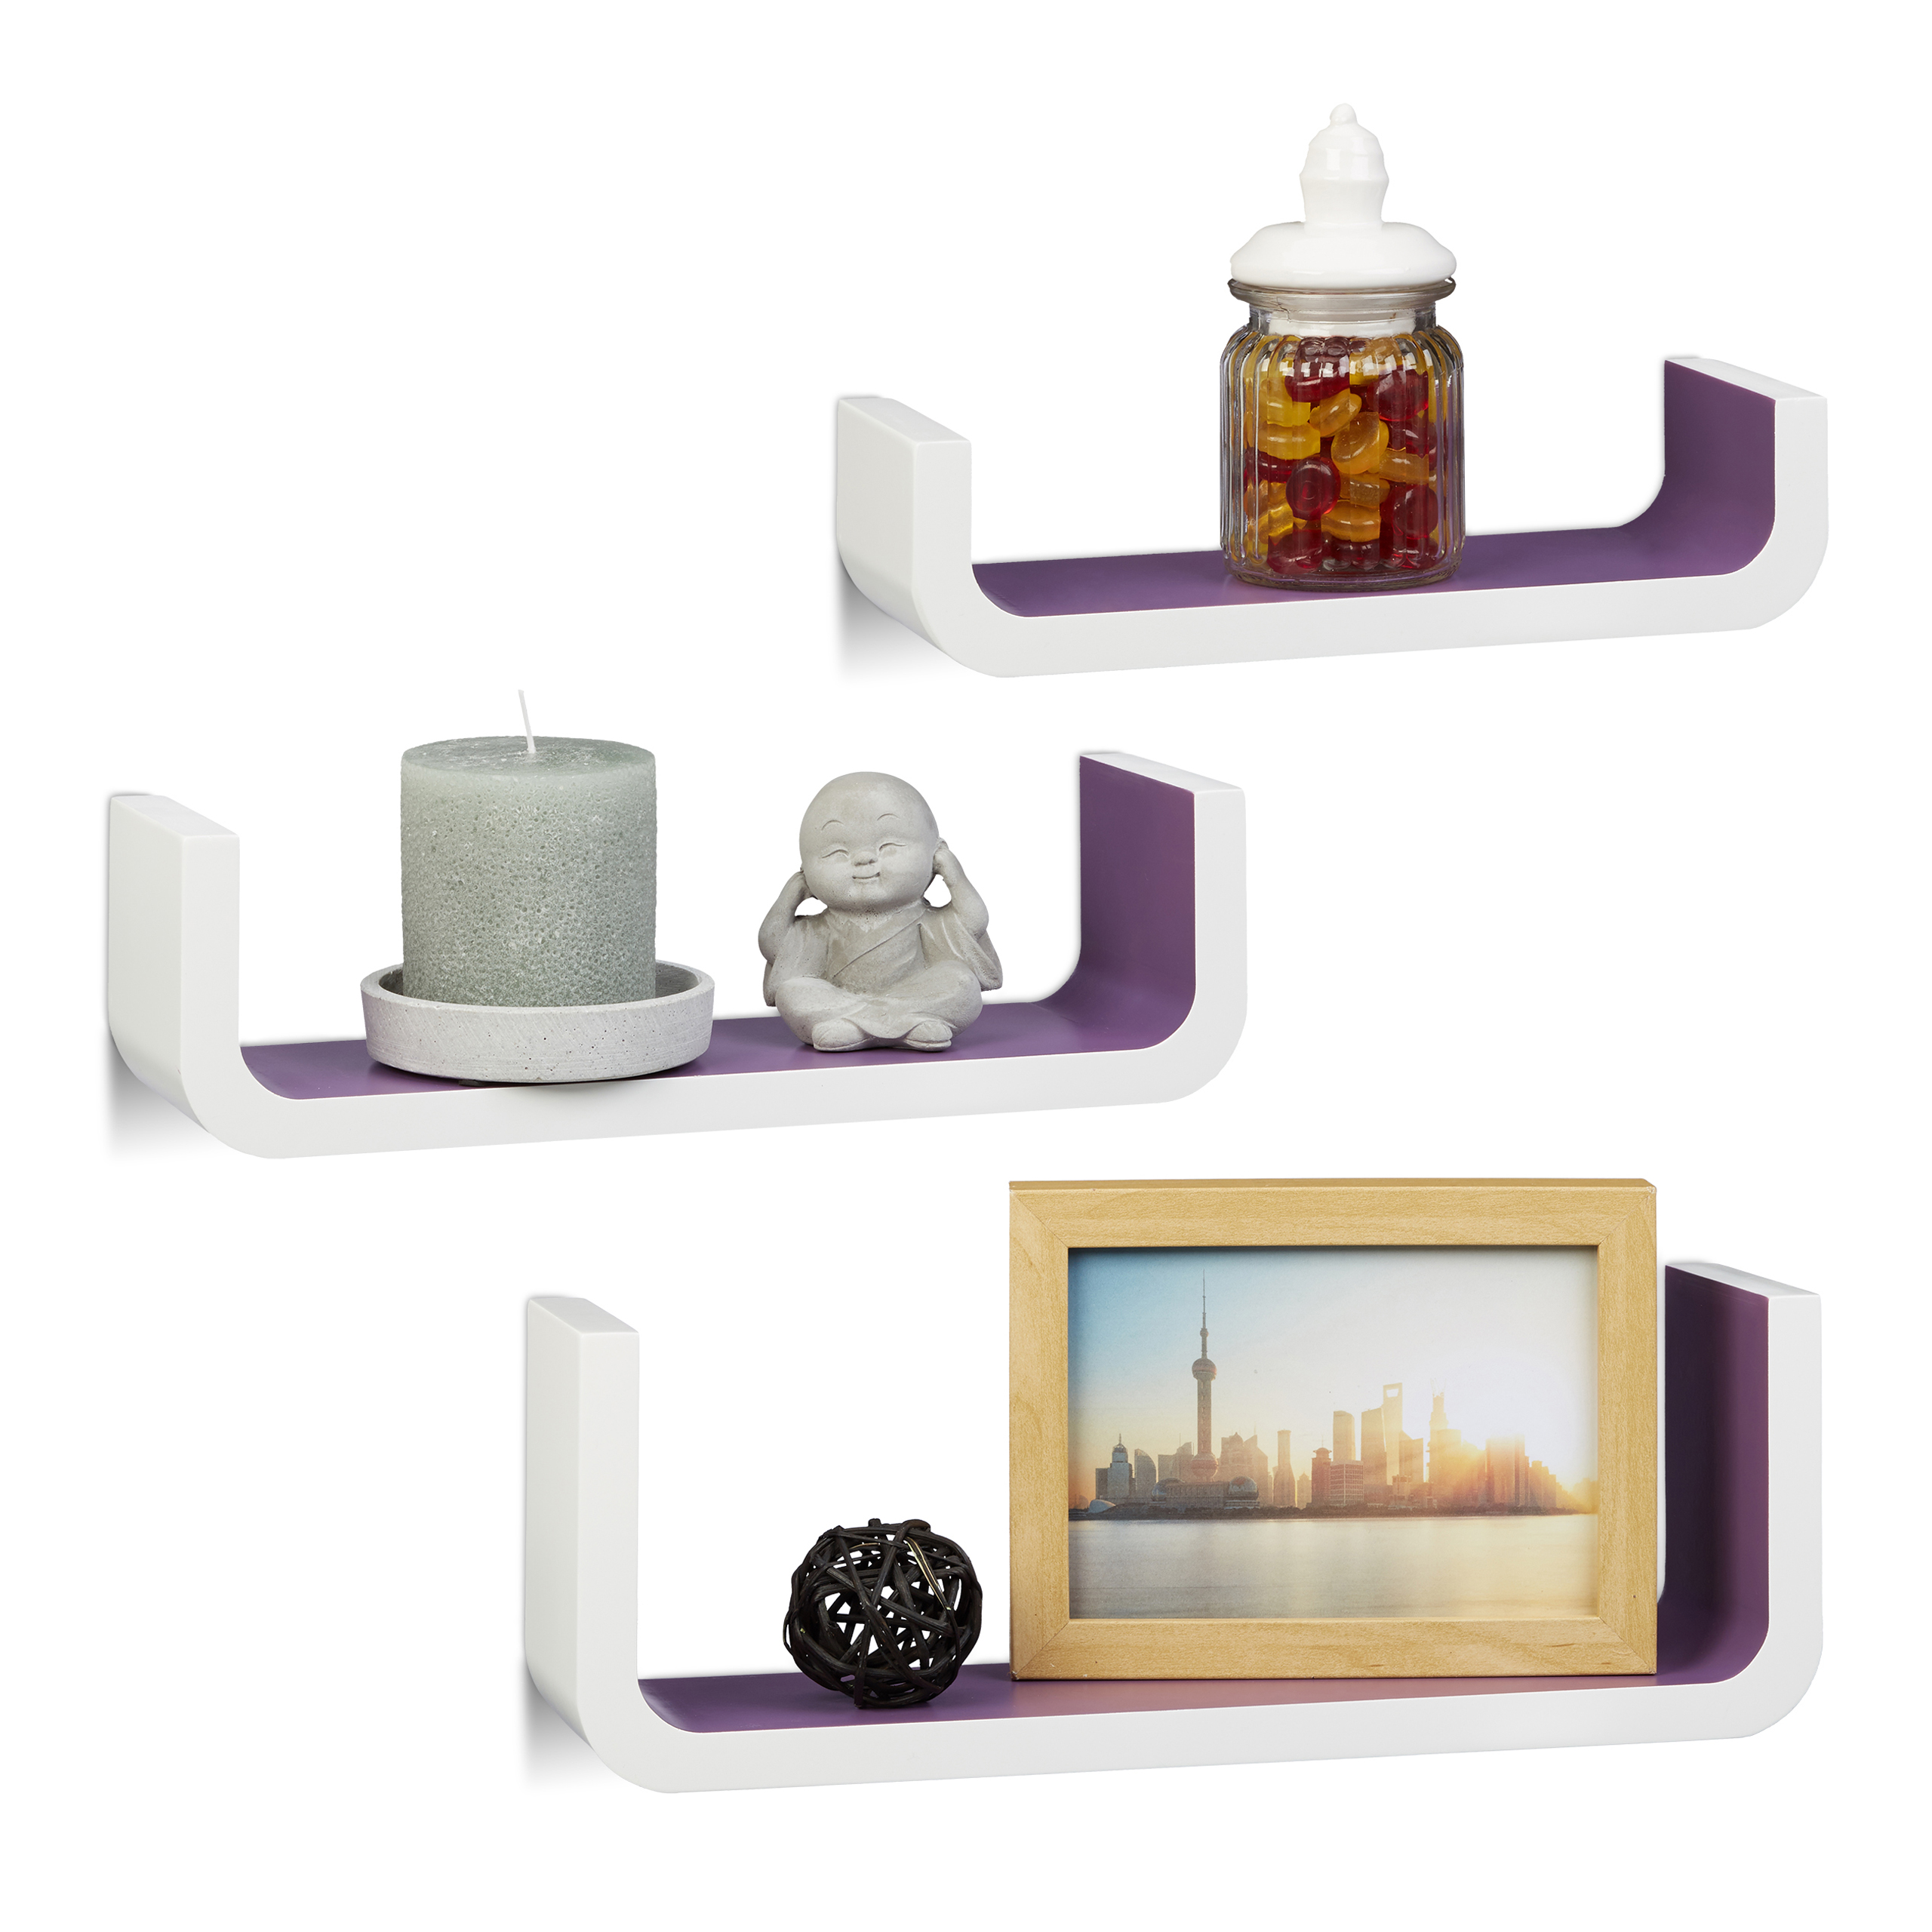 U-Shaped-Floating-Wall-Shelves-Set-of-3-Small-Narrow-Wooden-Bookcases